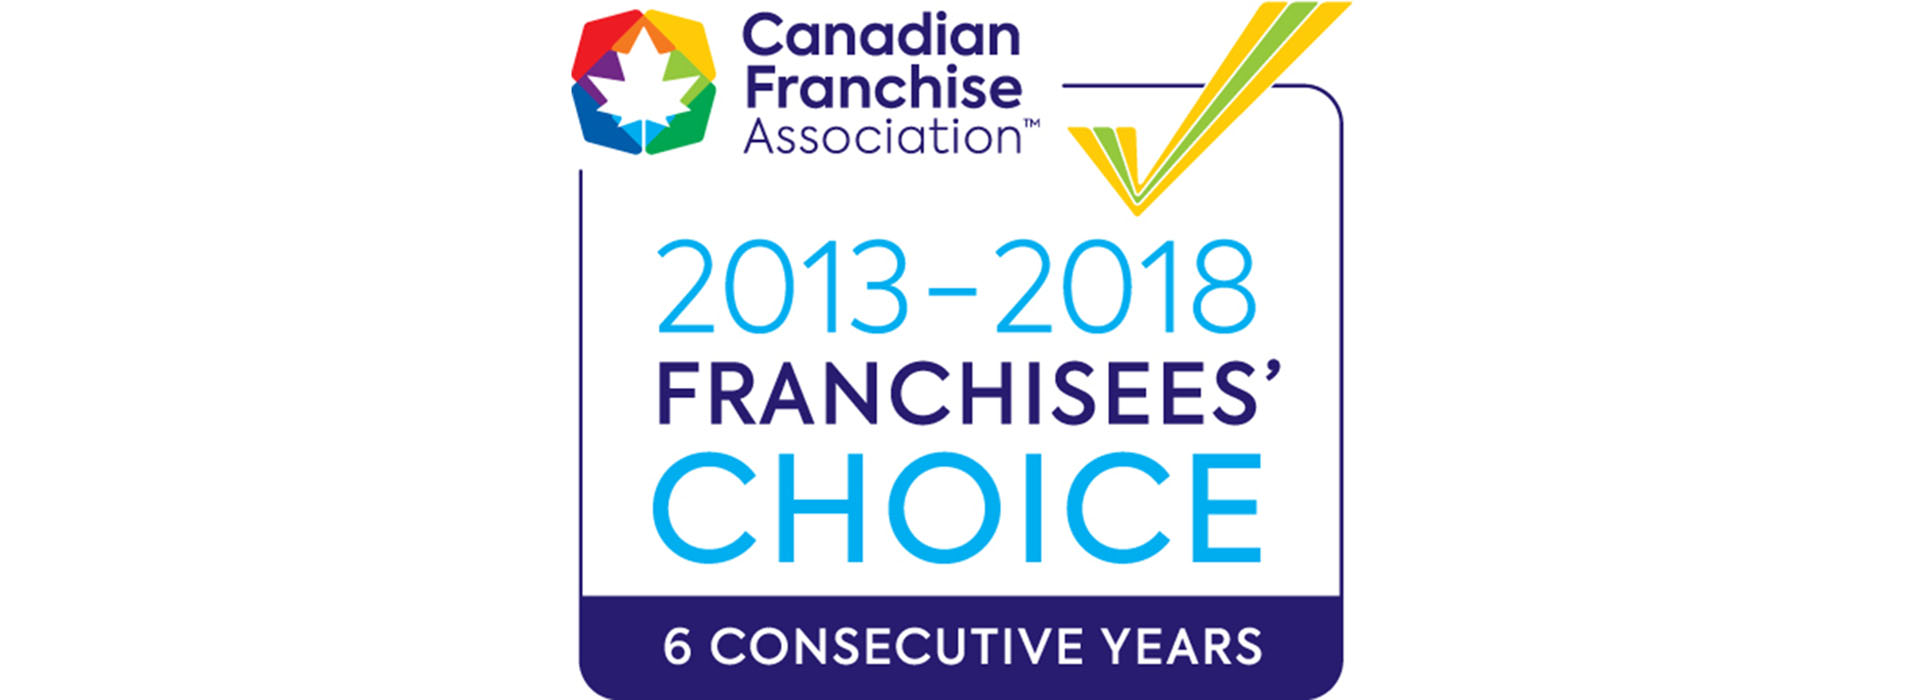 FranchiseesChoice_2018_6Yr resize